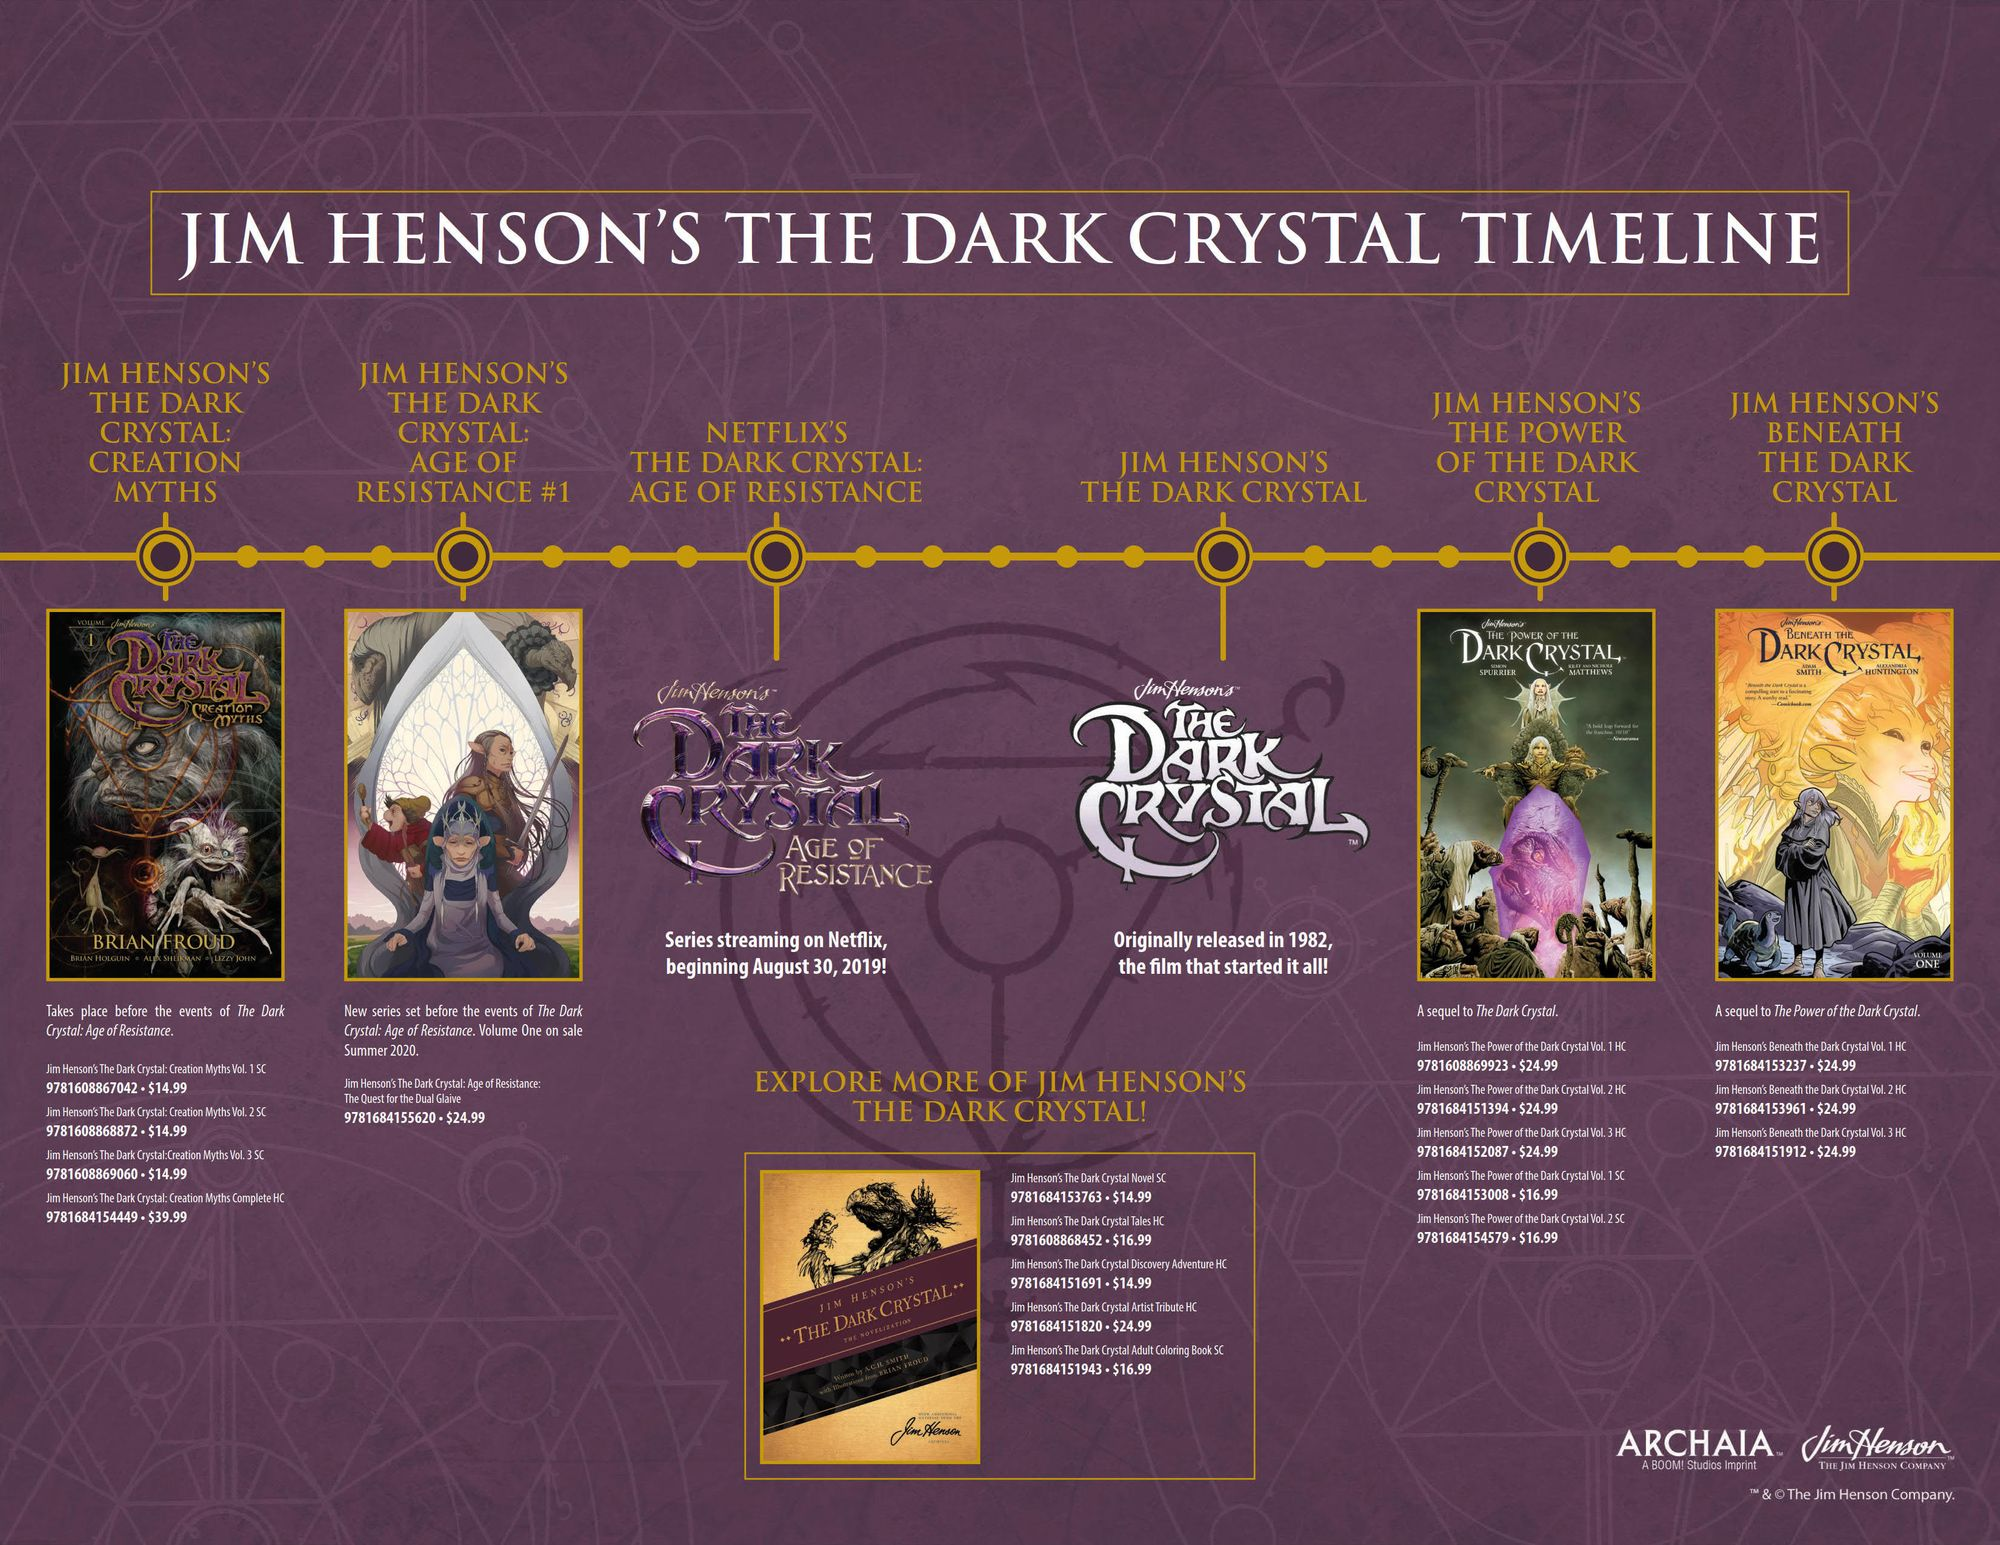 Jim Henson's The Dark Crystal Comics Timeline